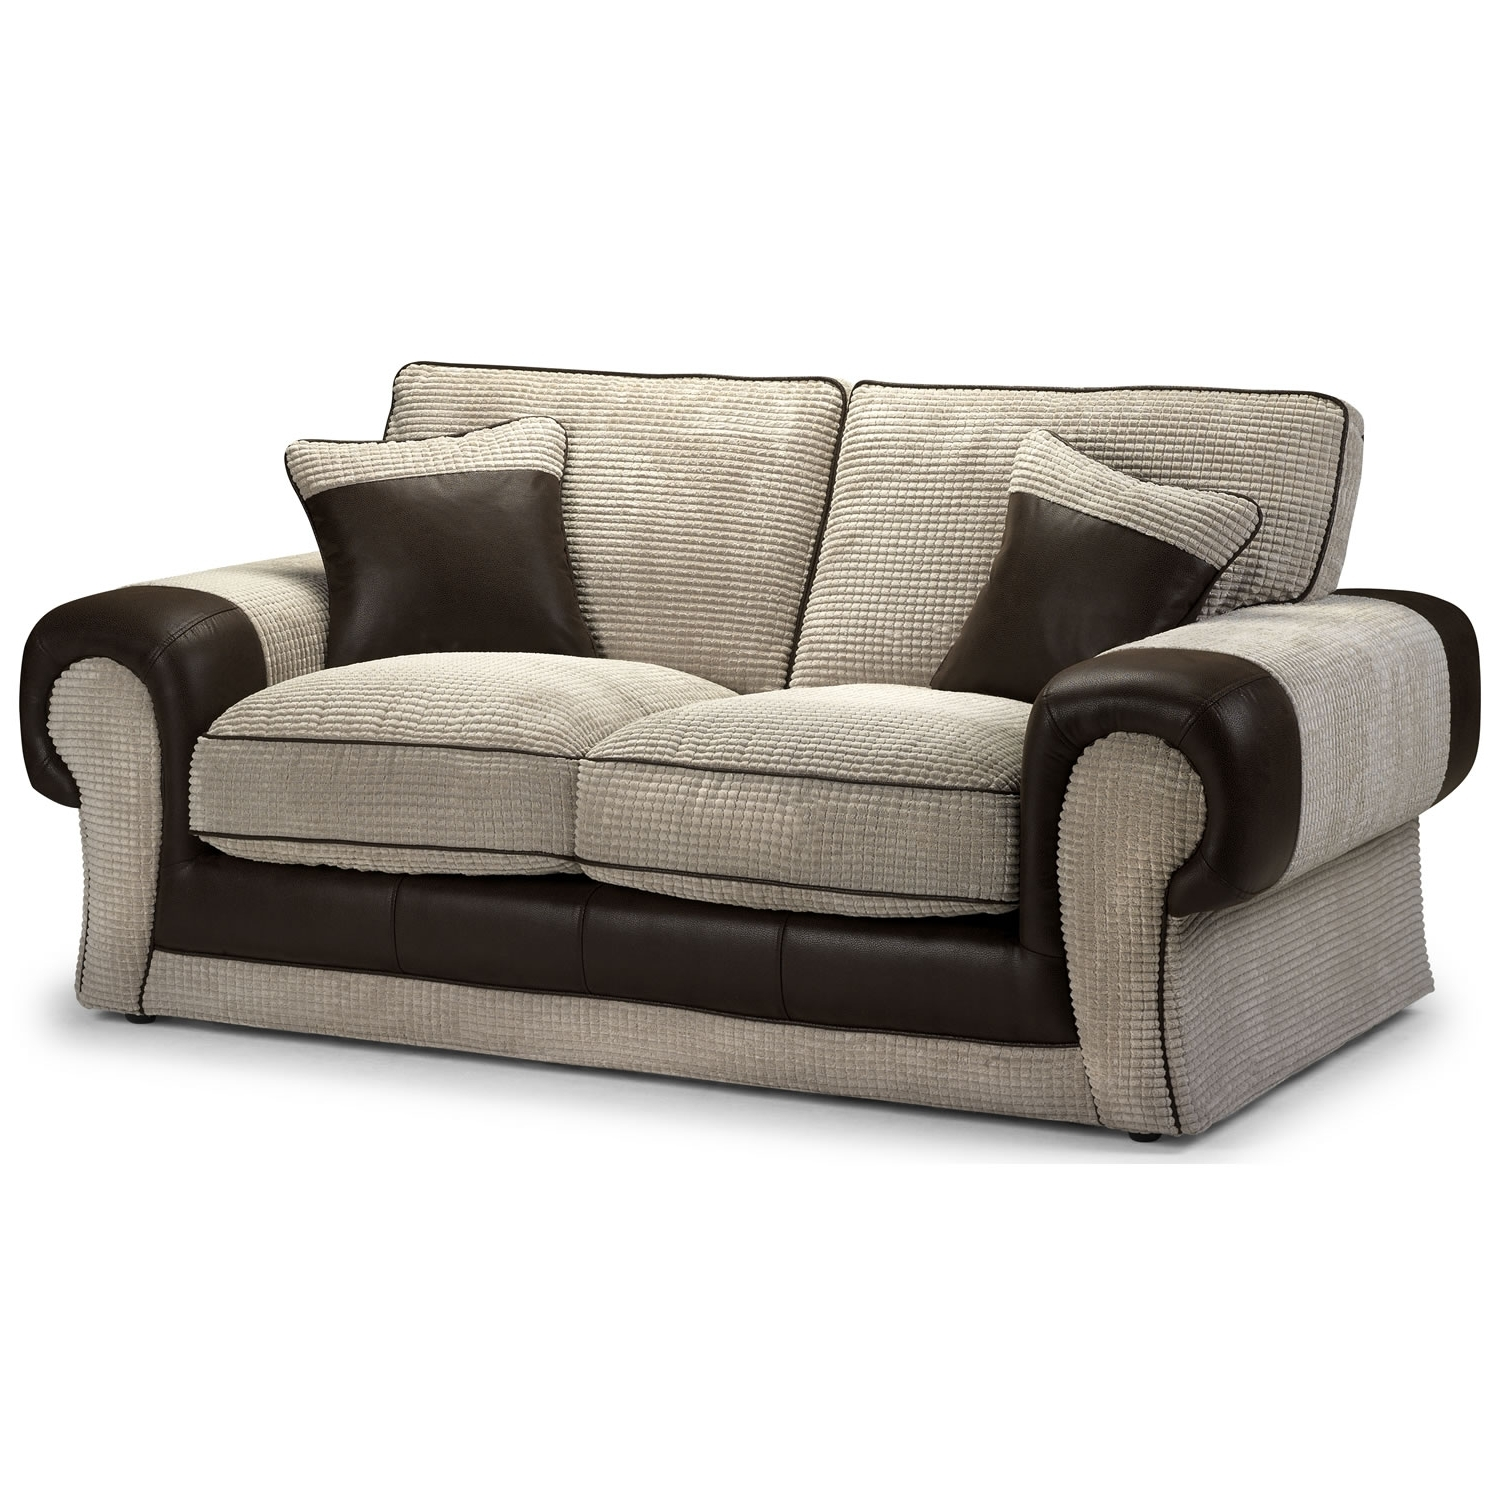 20 Collection Of Two Seater Sofas